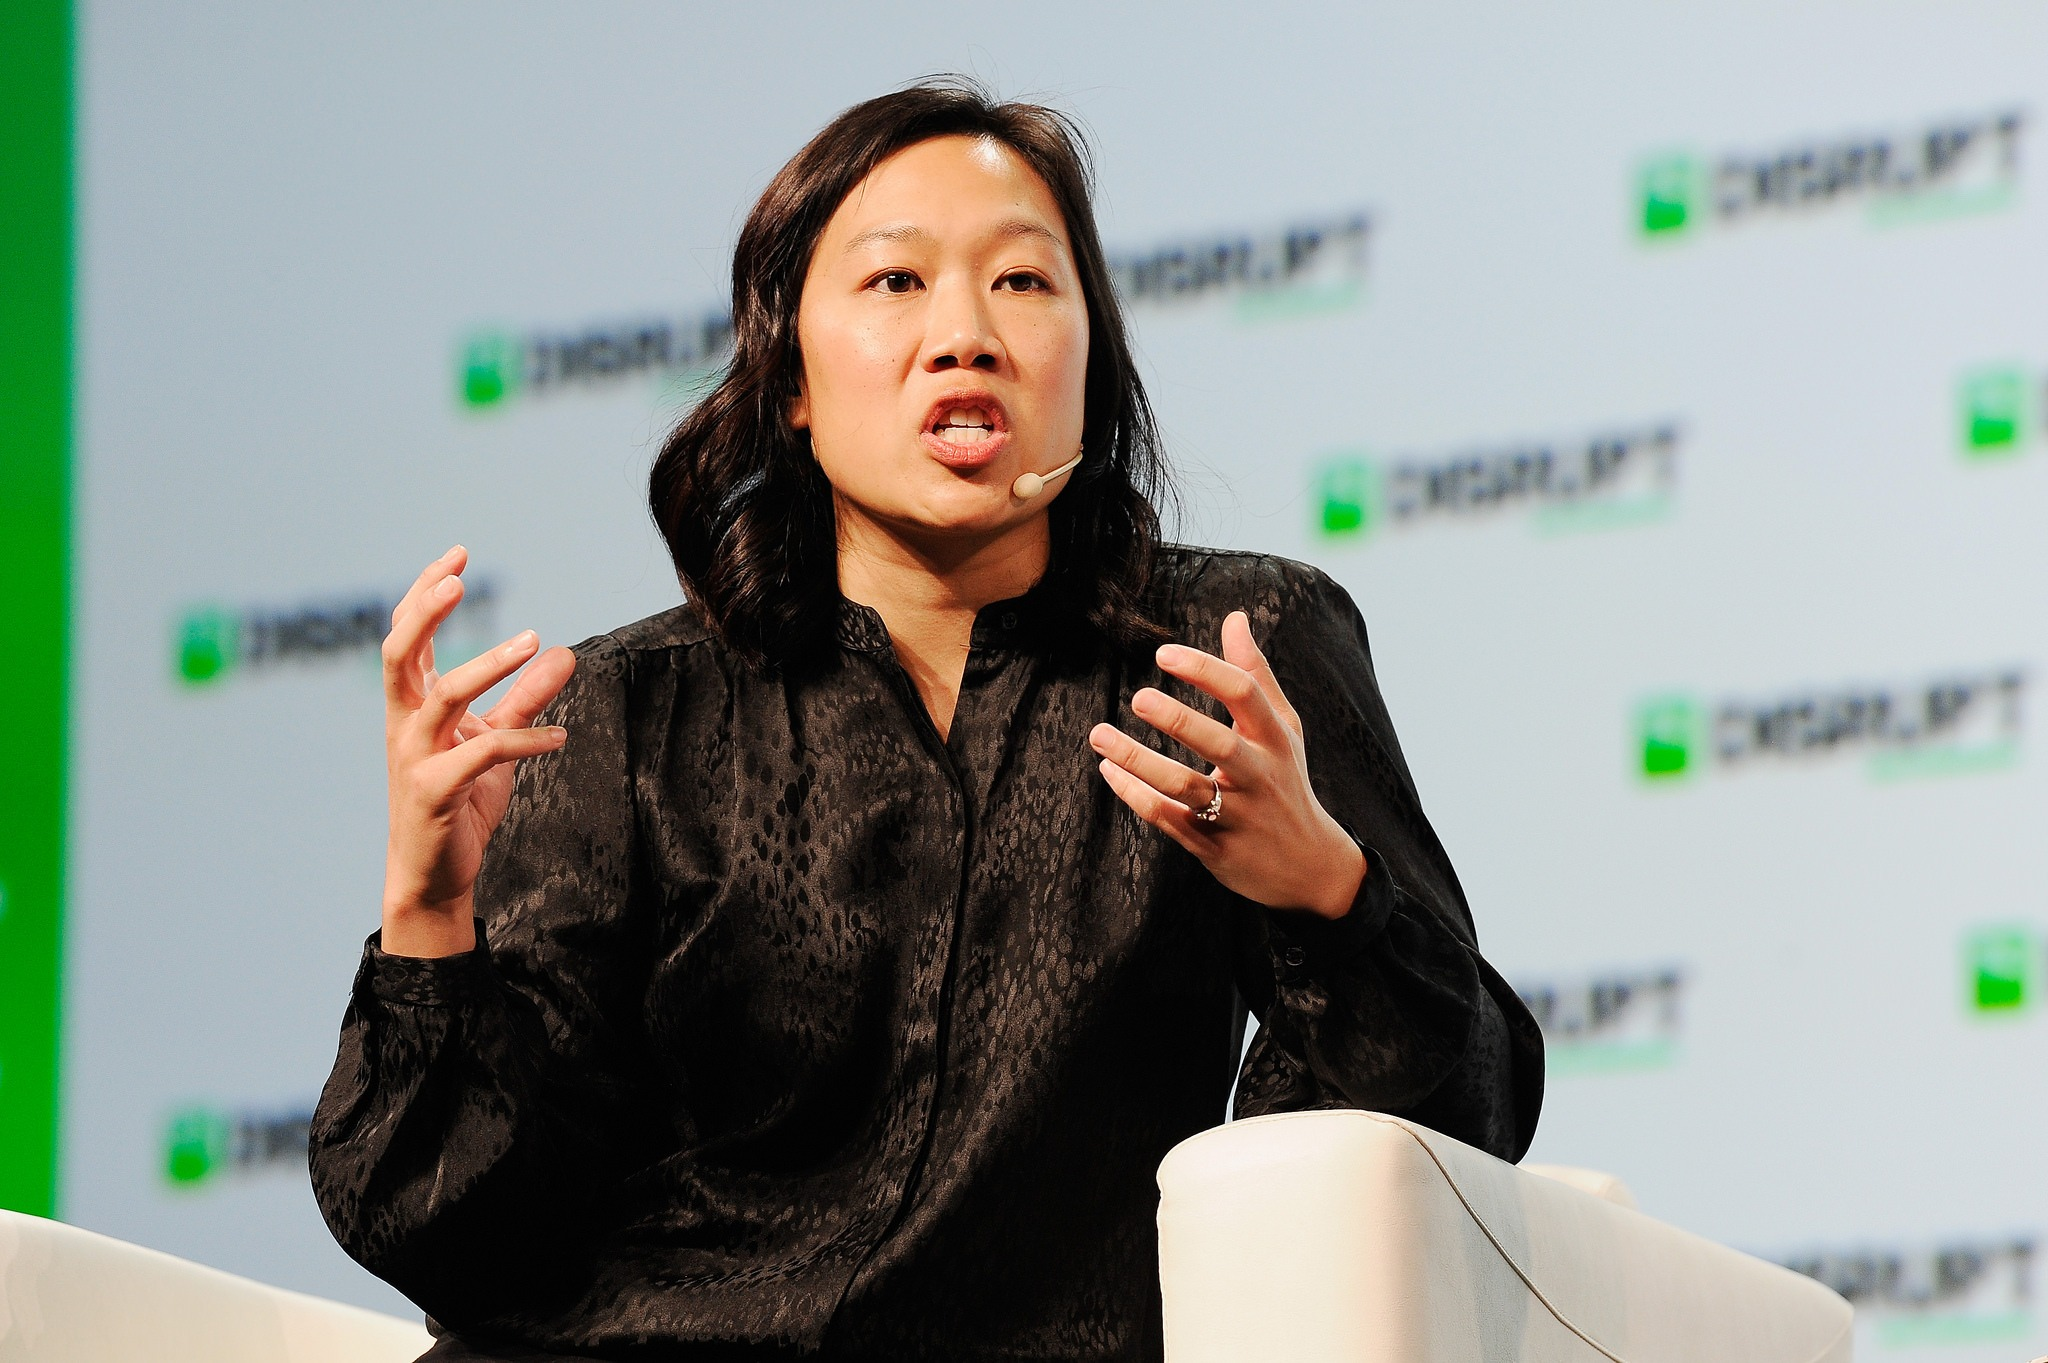 Priscilla Chan Dedicates $61 Billion to Chan Zuckerberg Initiative for Disease Prevention in Future Generations